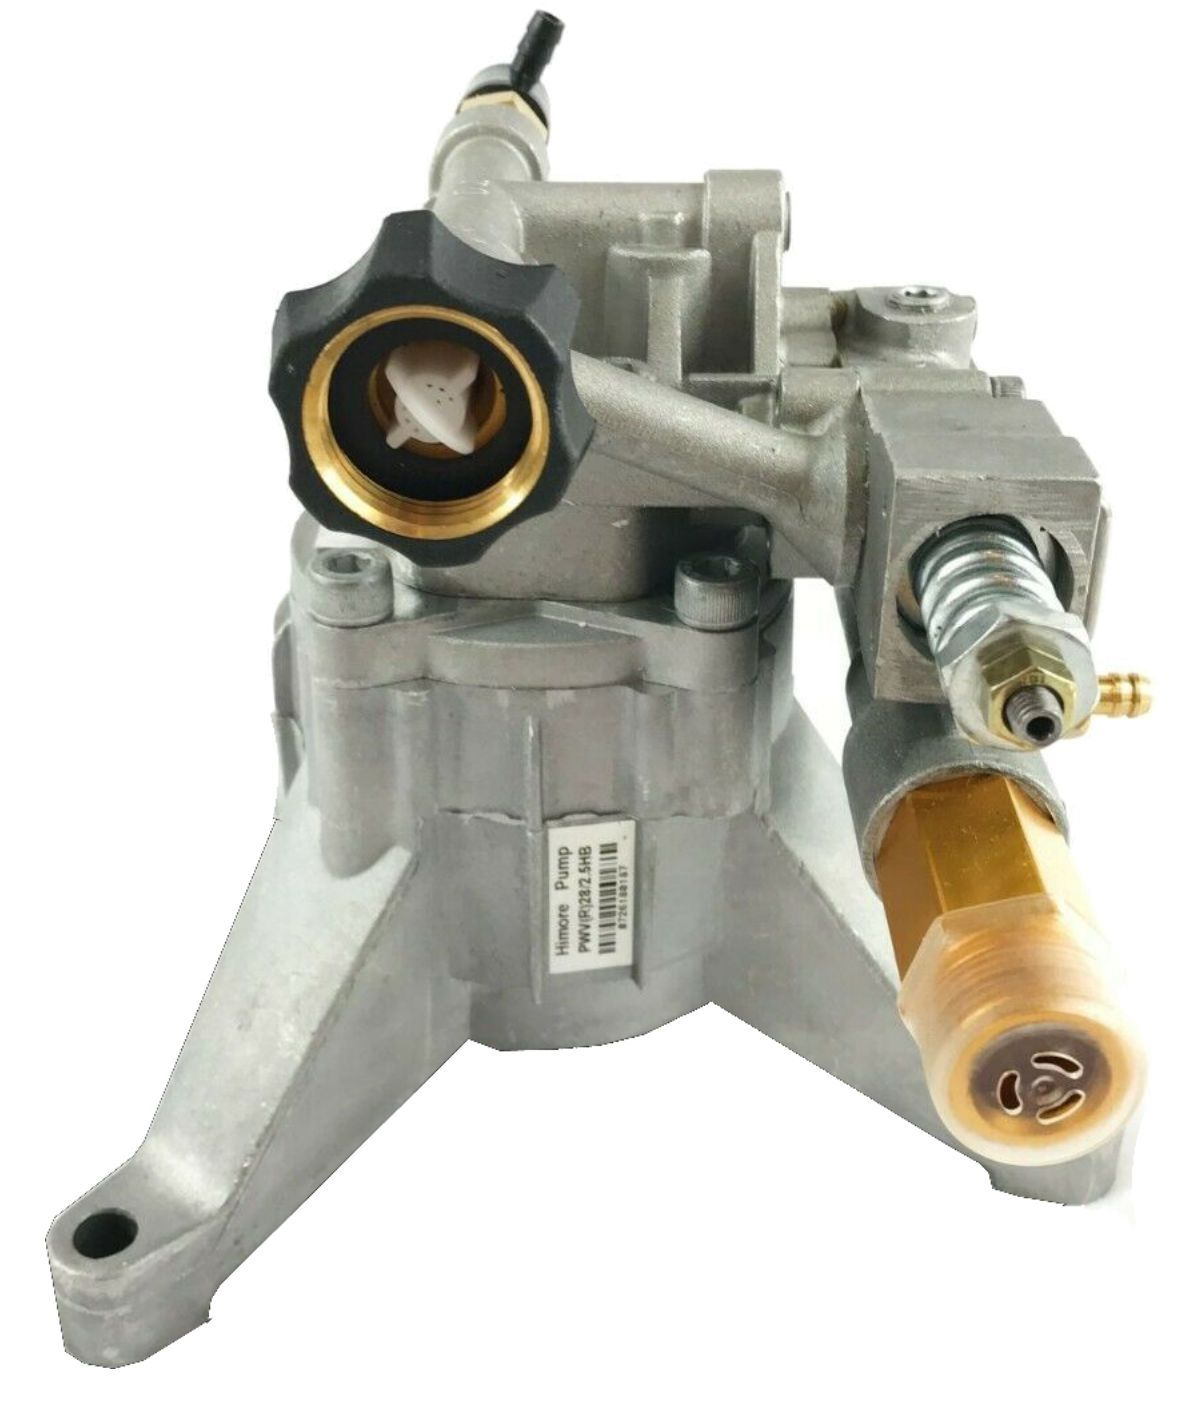 2700 PSI PRESSURE WASHER WATER PUMP fits Troy-Bilt 020348 020348-0 - AE-Power